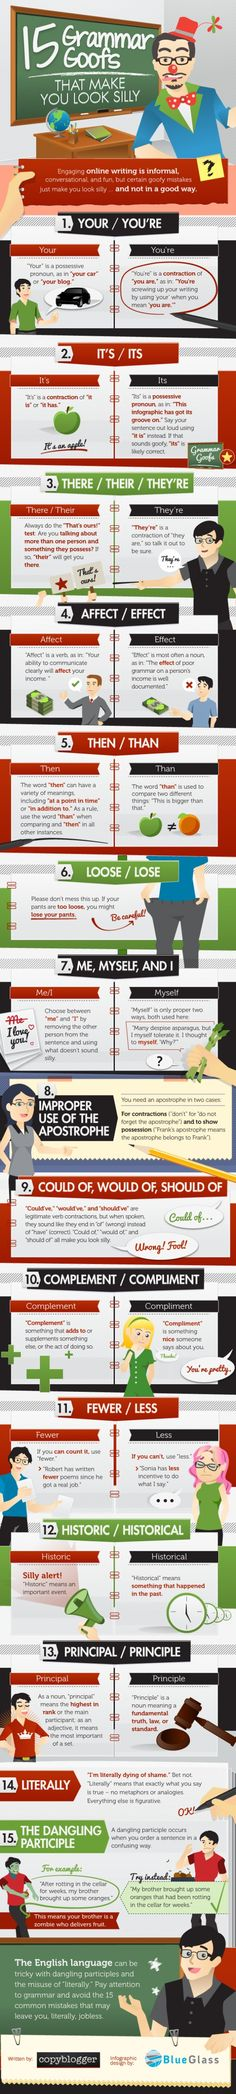 Check out this helpful Infographic to learn to avoid simple grammatical mistakes in your formal and informal writing!